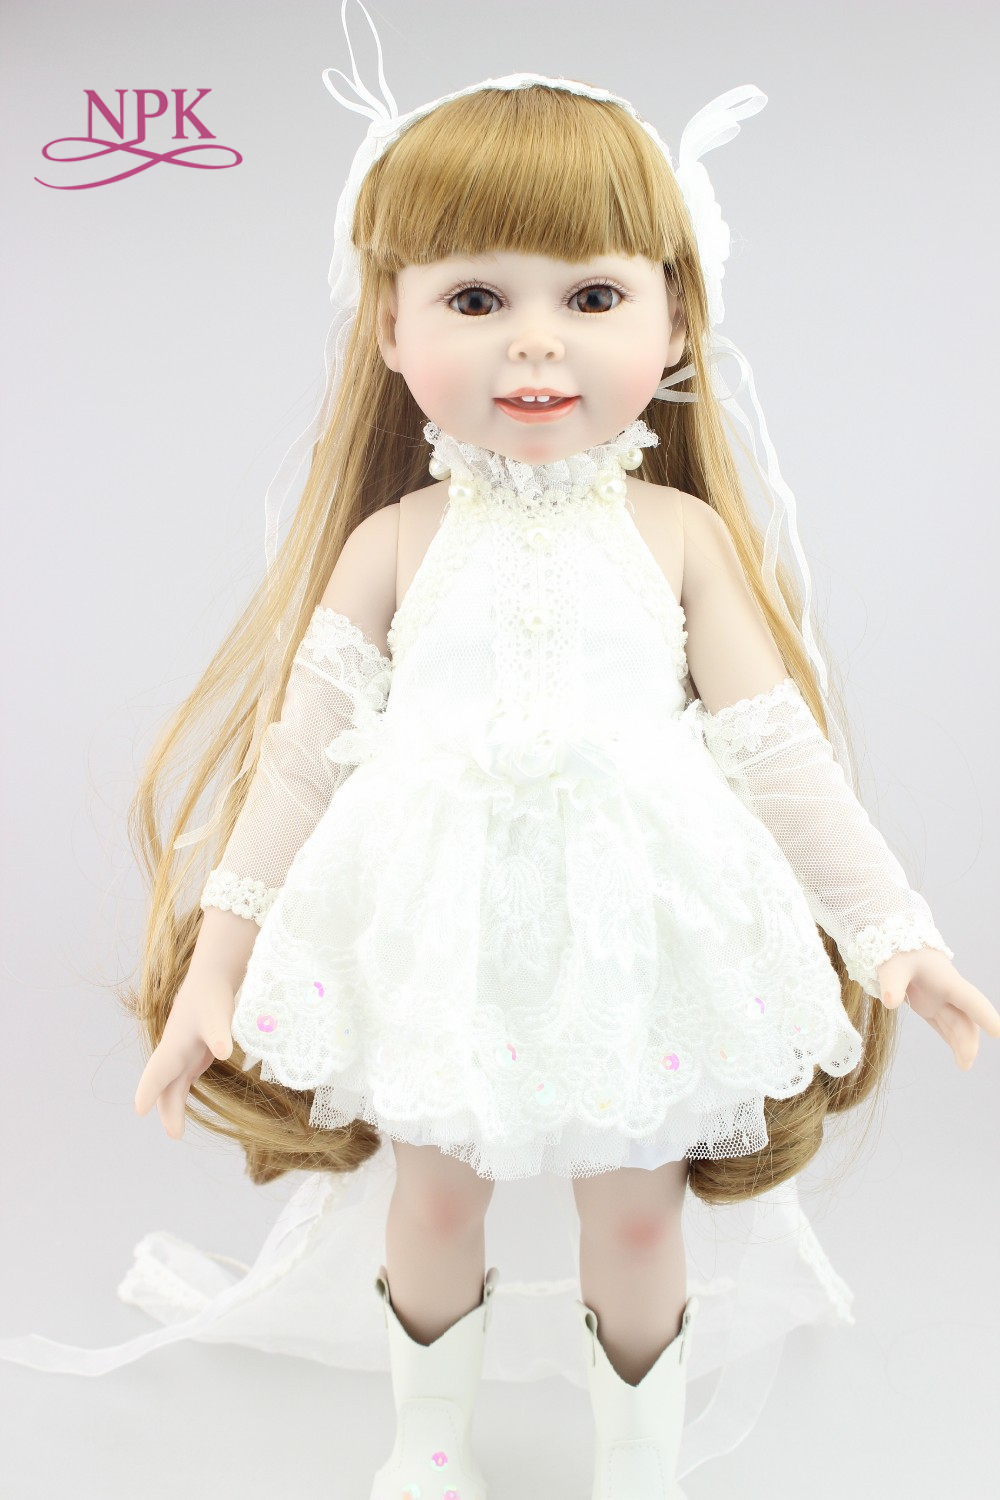 NPK New design 18inches fashion play doll with  White skirt education toy for girls birthday Gift or christmas giftsNPK New design 18inches fashion play doll with  White skirt education toy for girls birthday Gift or christmas gifts